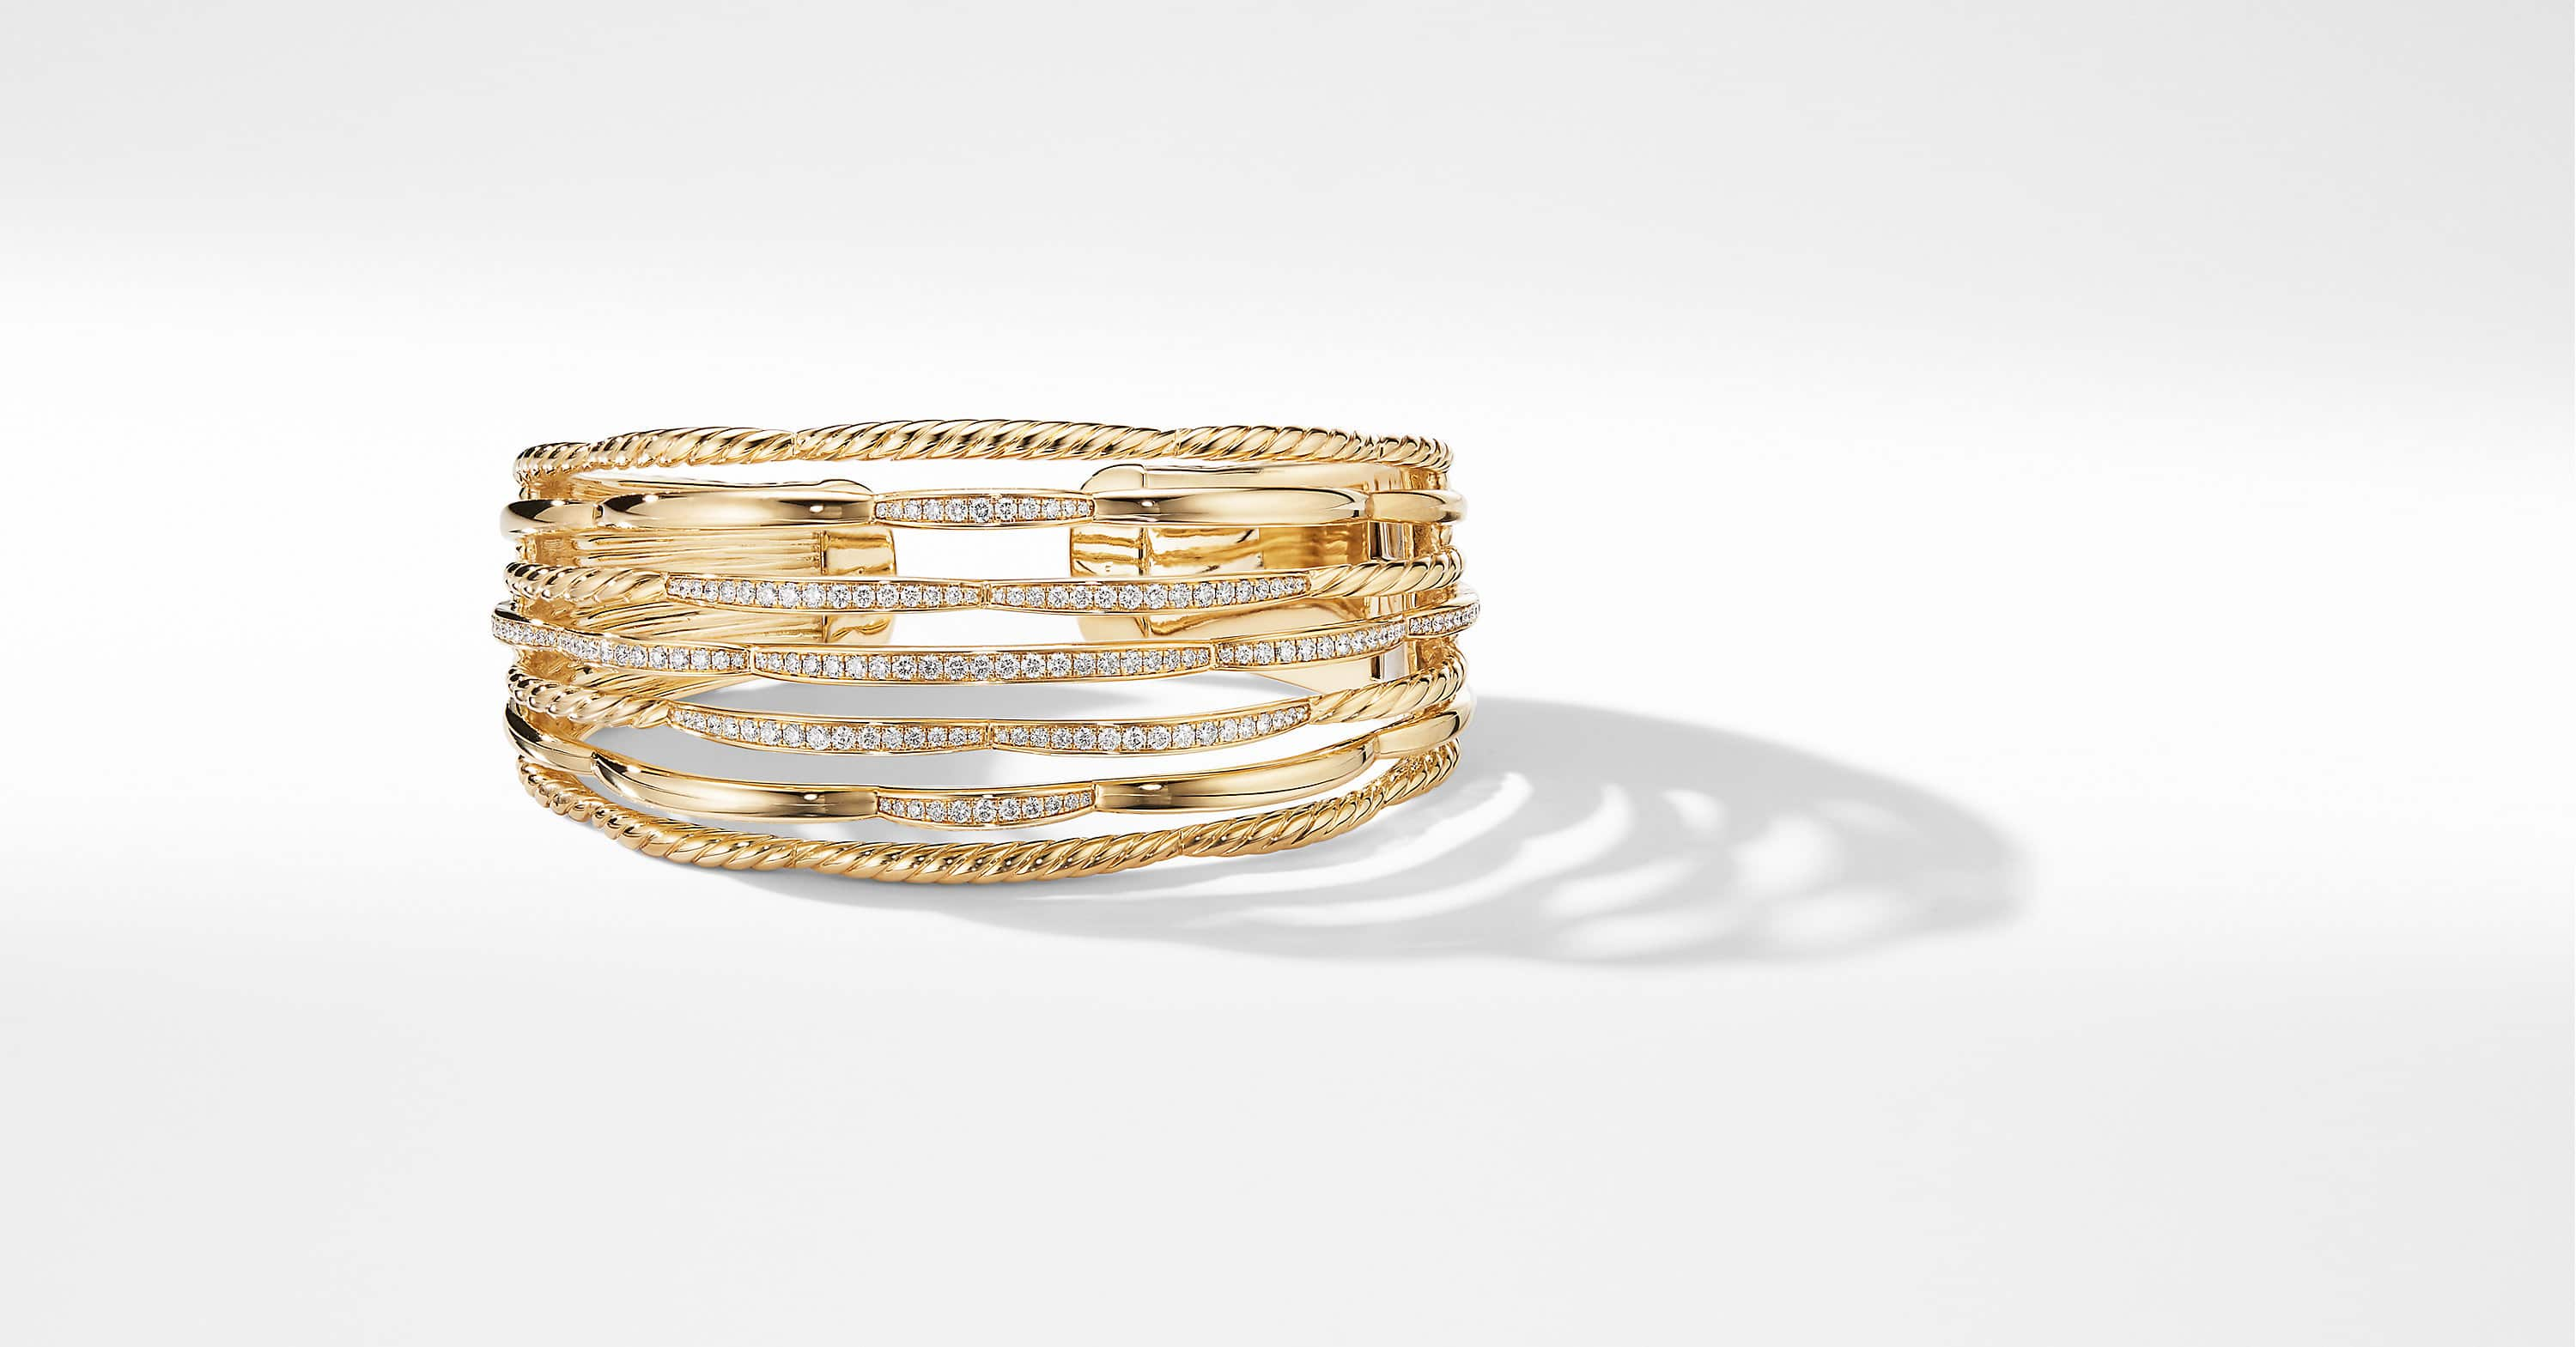 Tides Cuff Bracelet in 18K Yellow Gold with Diamonds, 32mm